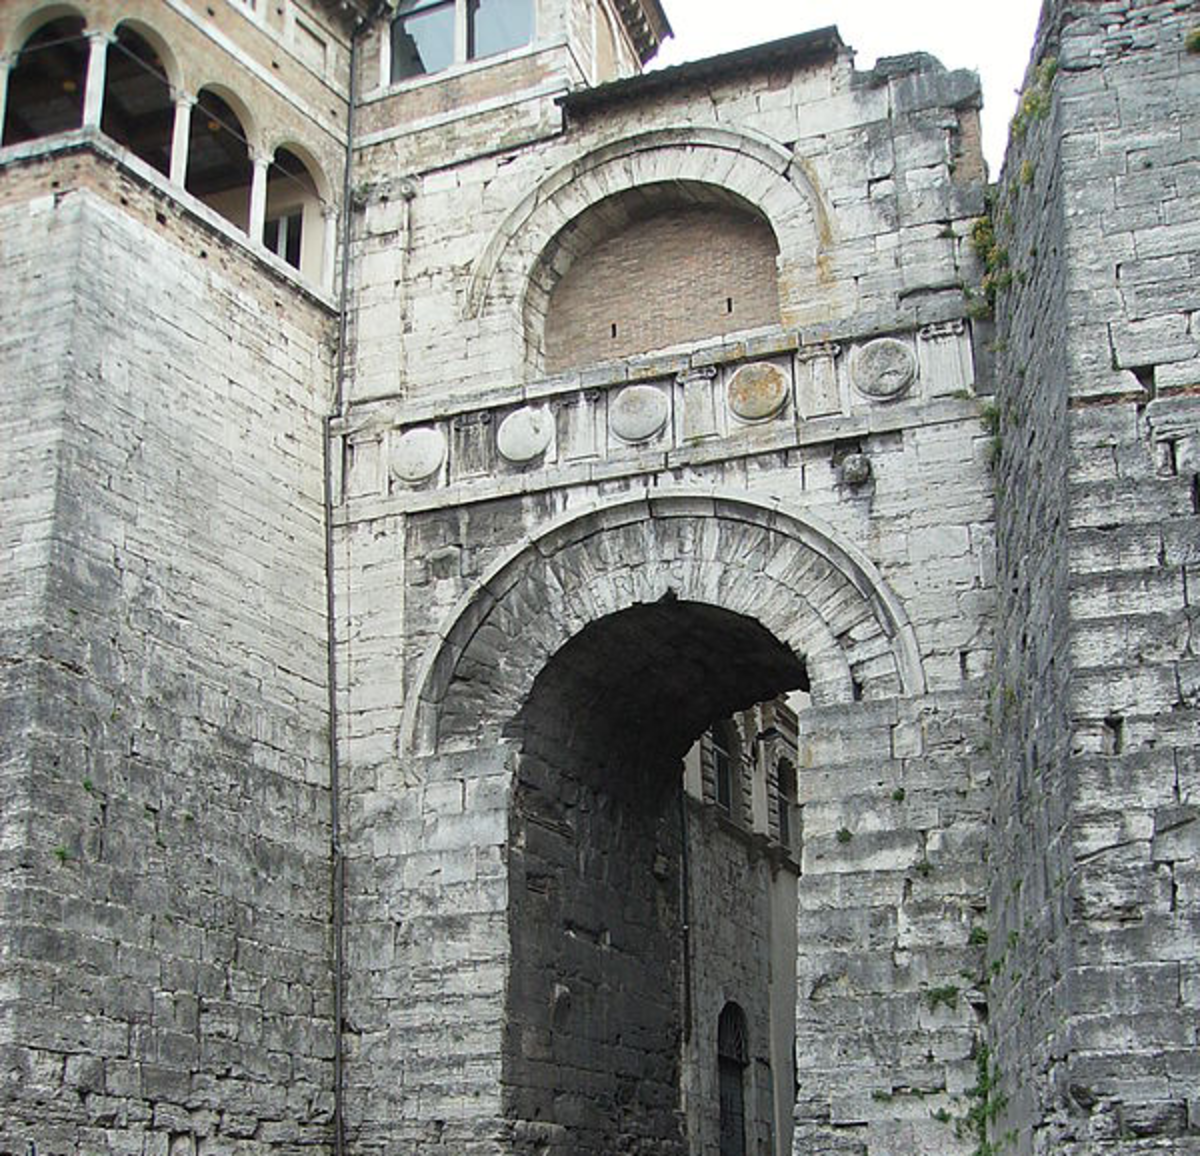 Etruscan arches at the Perugia gate